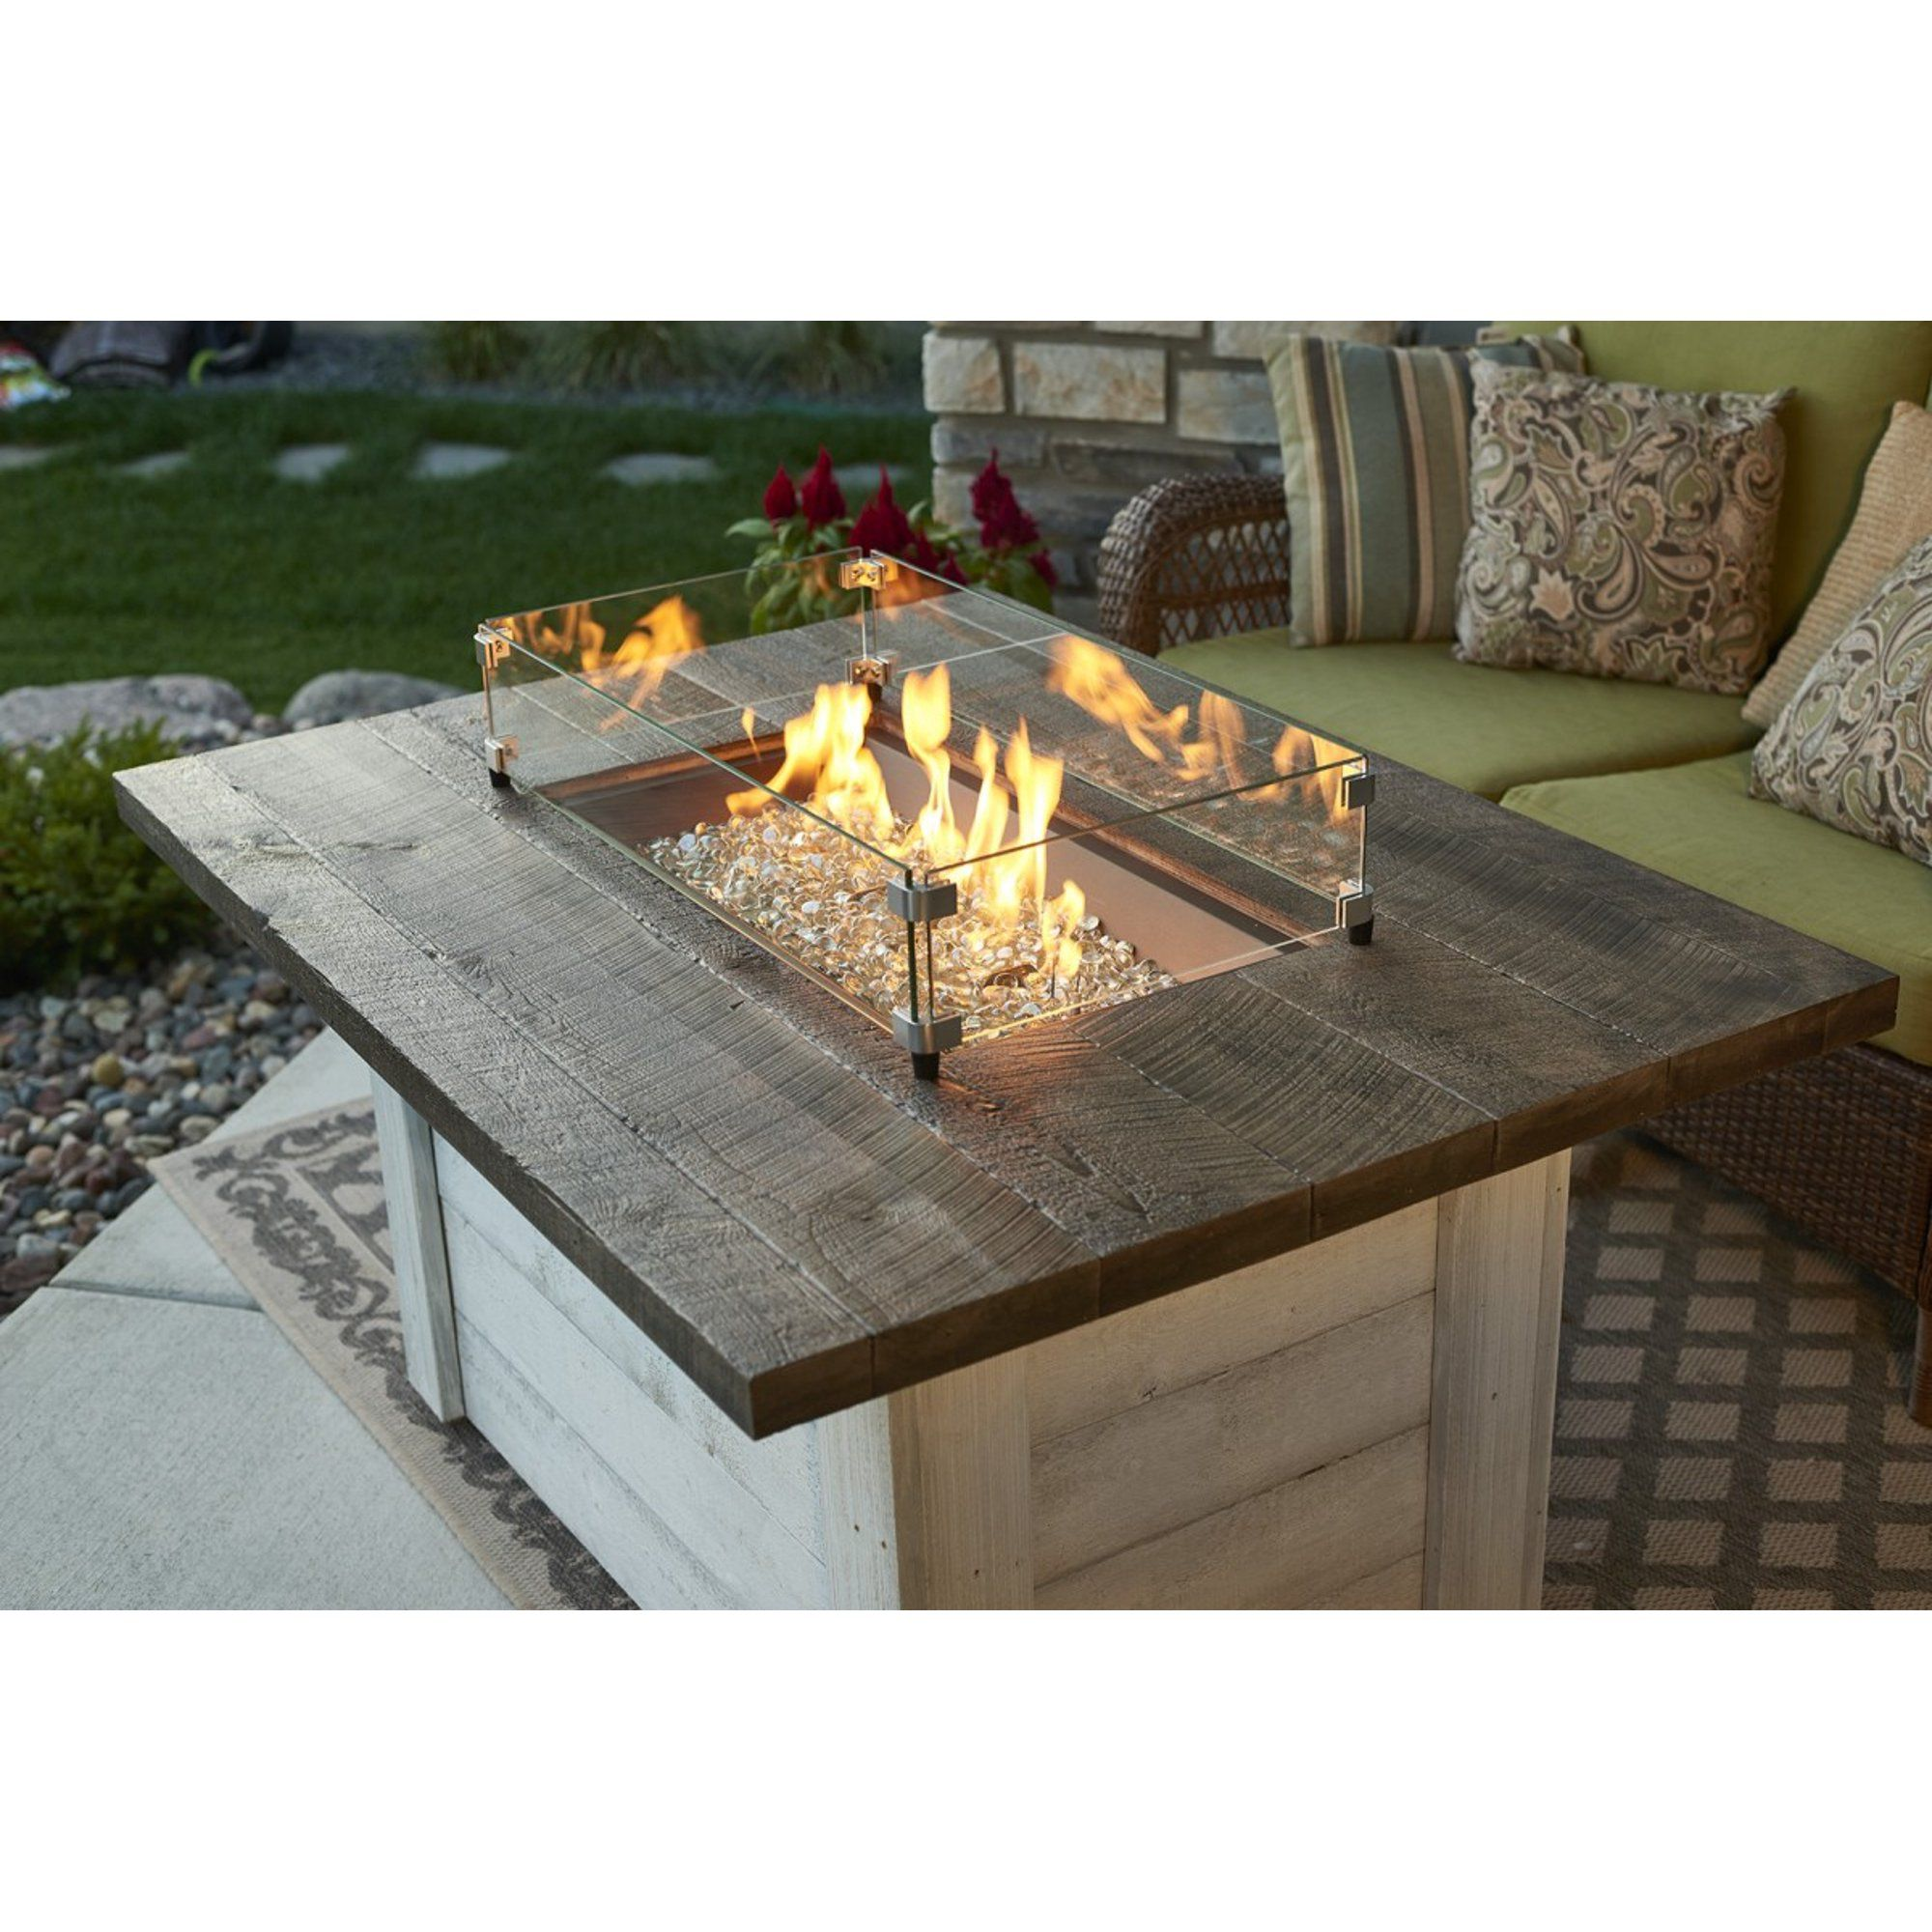 Alcott rectangular gas fire pit table in